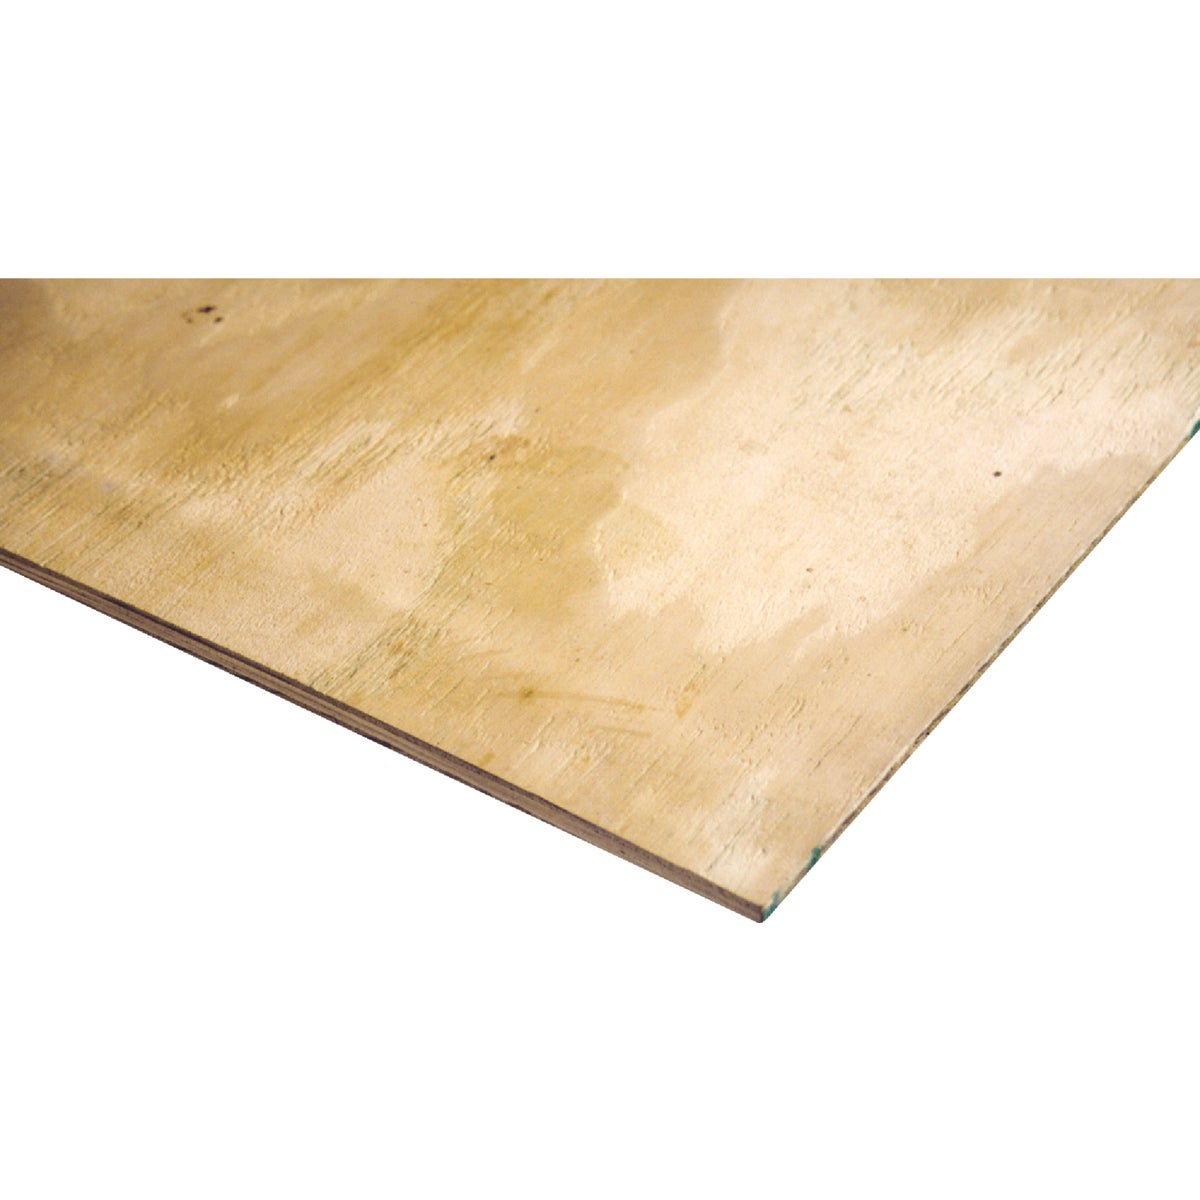 3/4X24X48 BCX PN PLYWOOD - 12611 by Ufpi Lbr & Treated